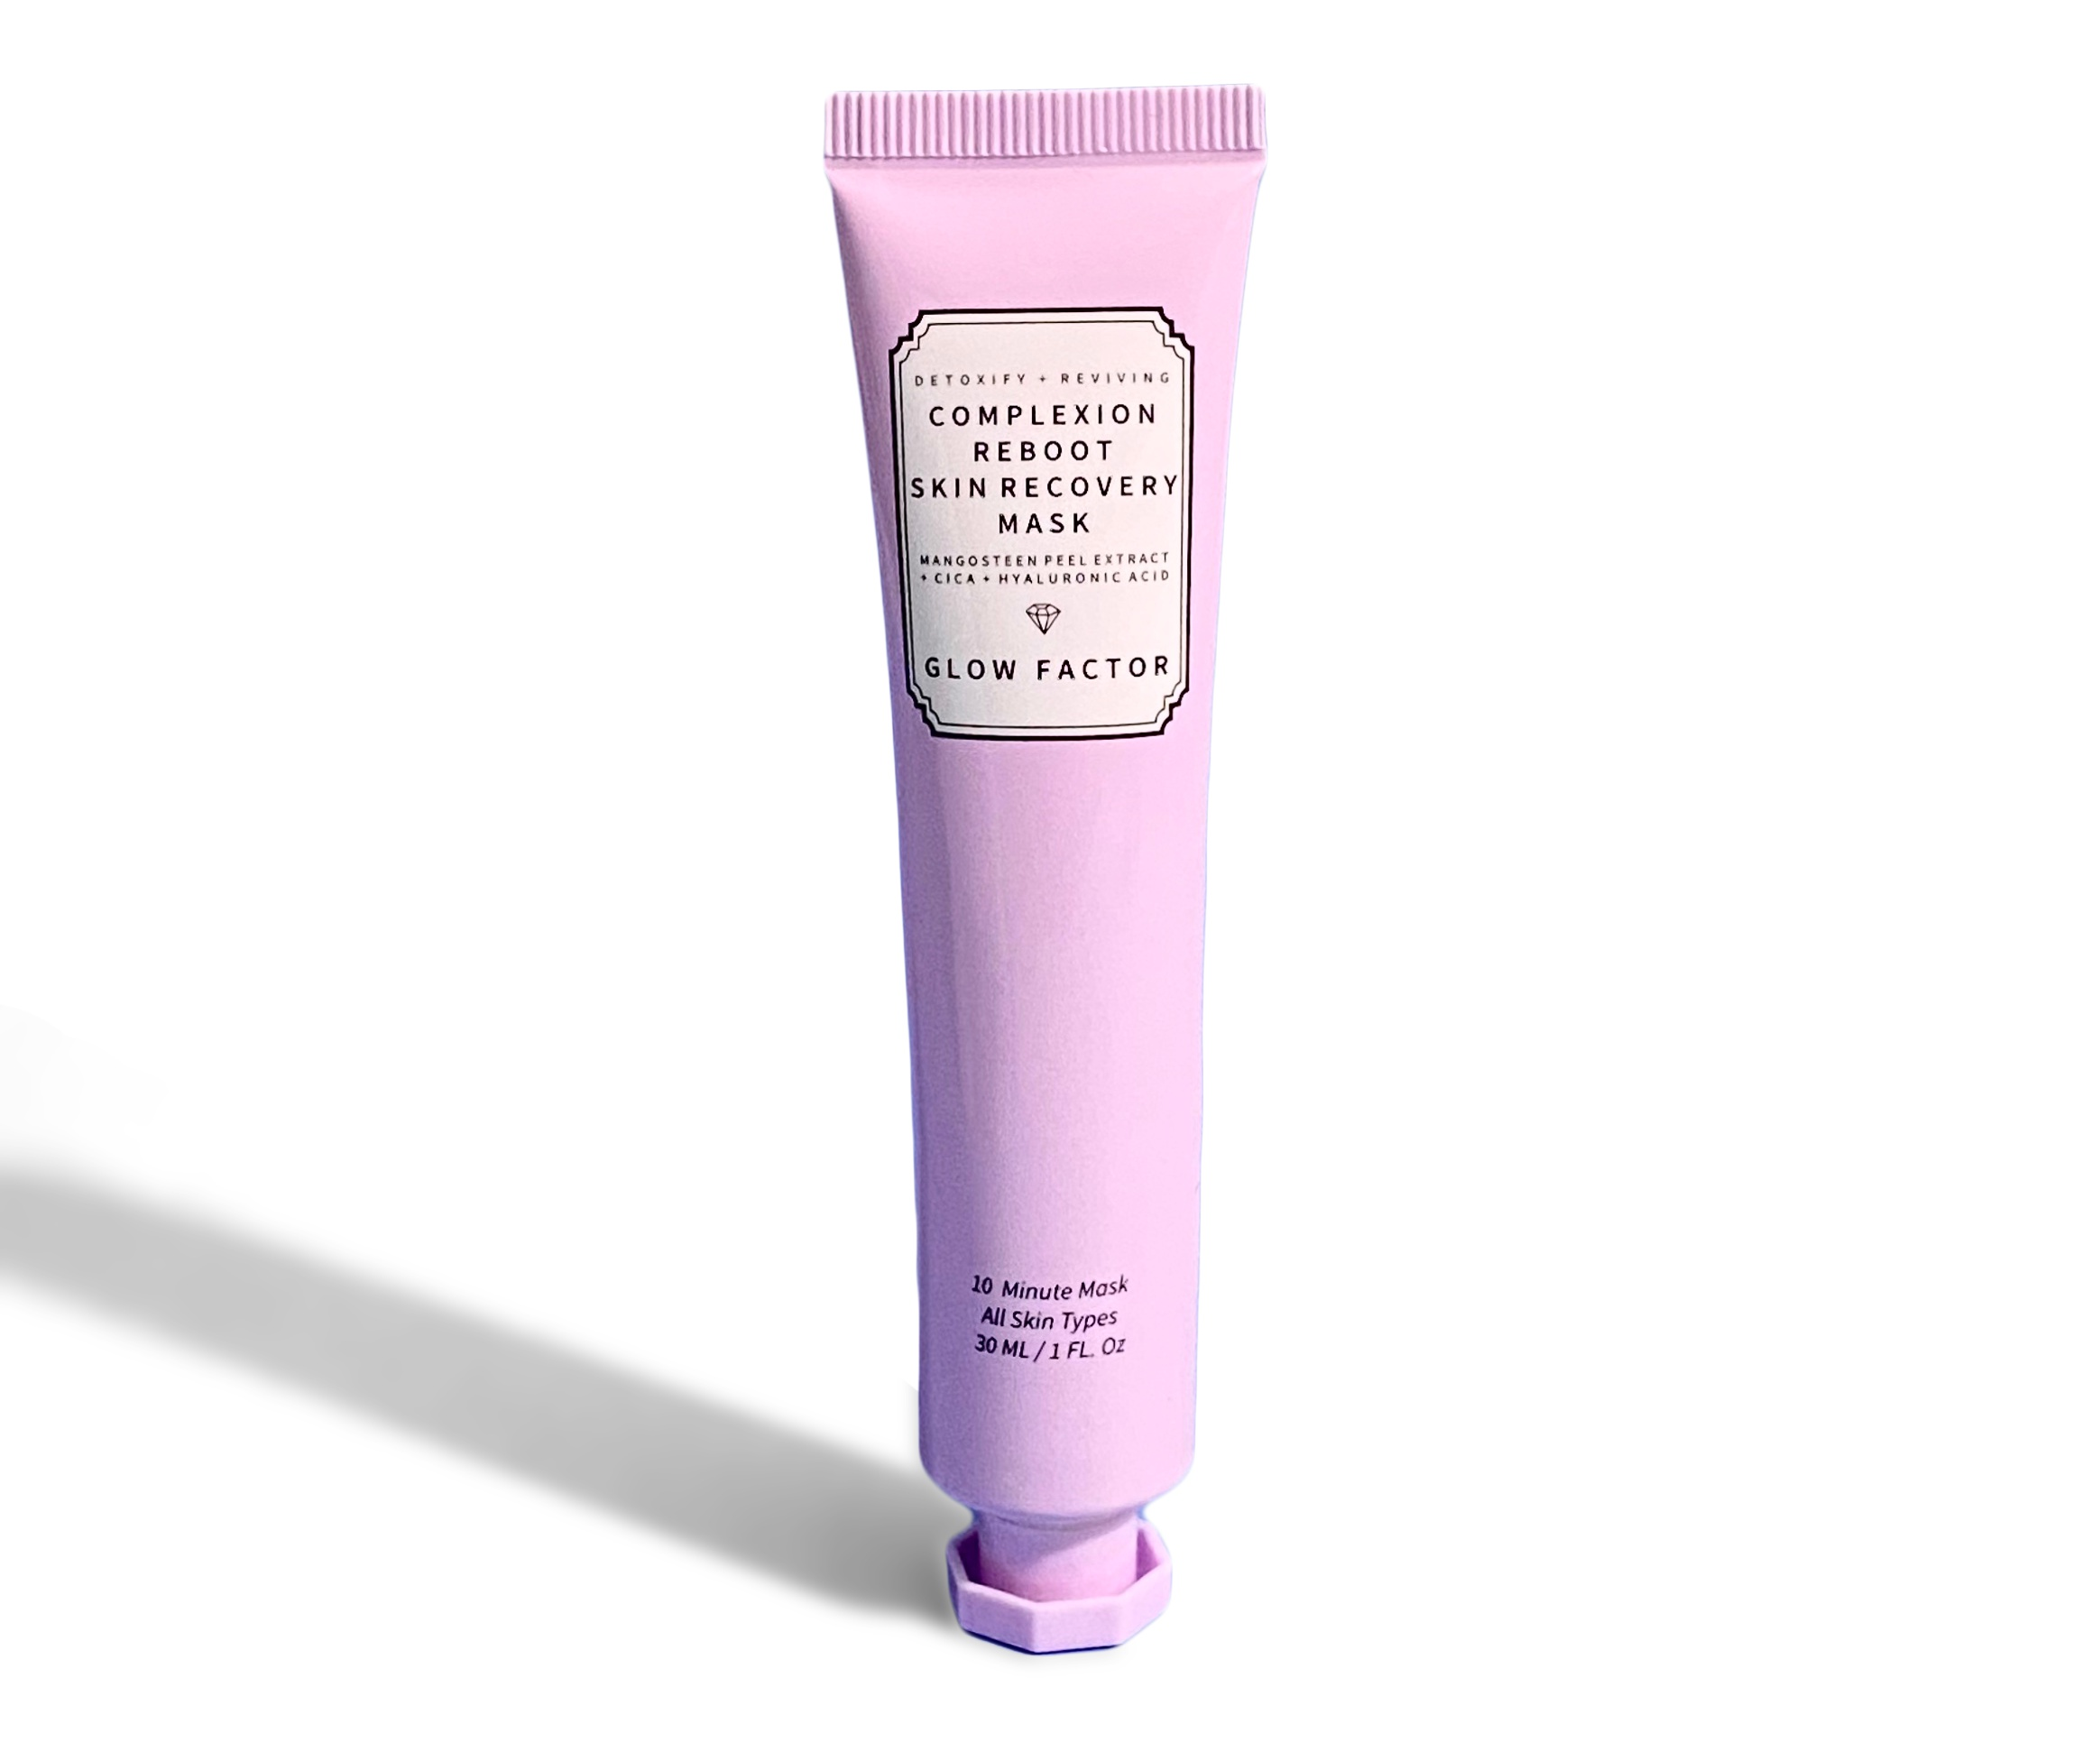 Glow Factor Complexion Reboot Skin Recovery Mask